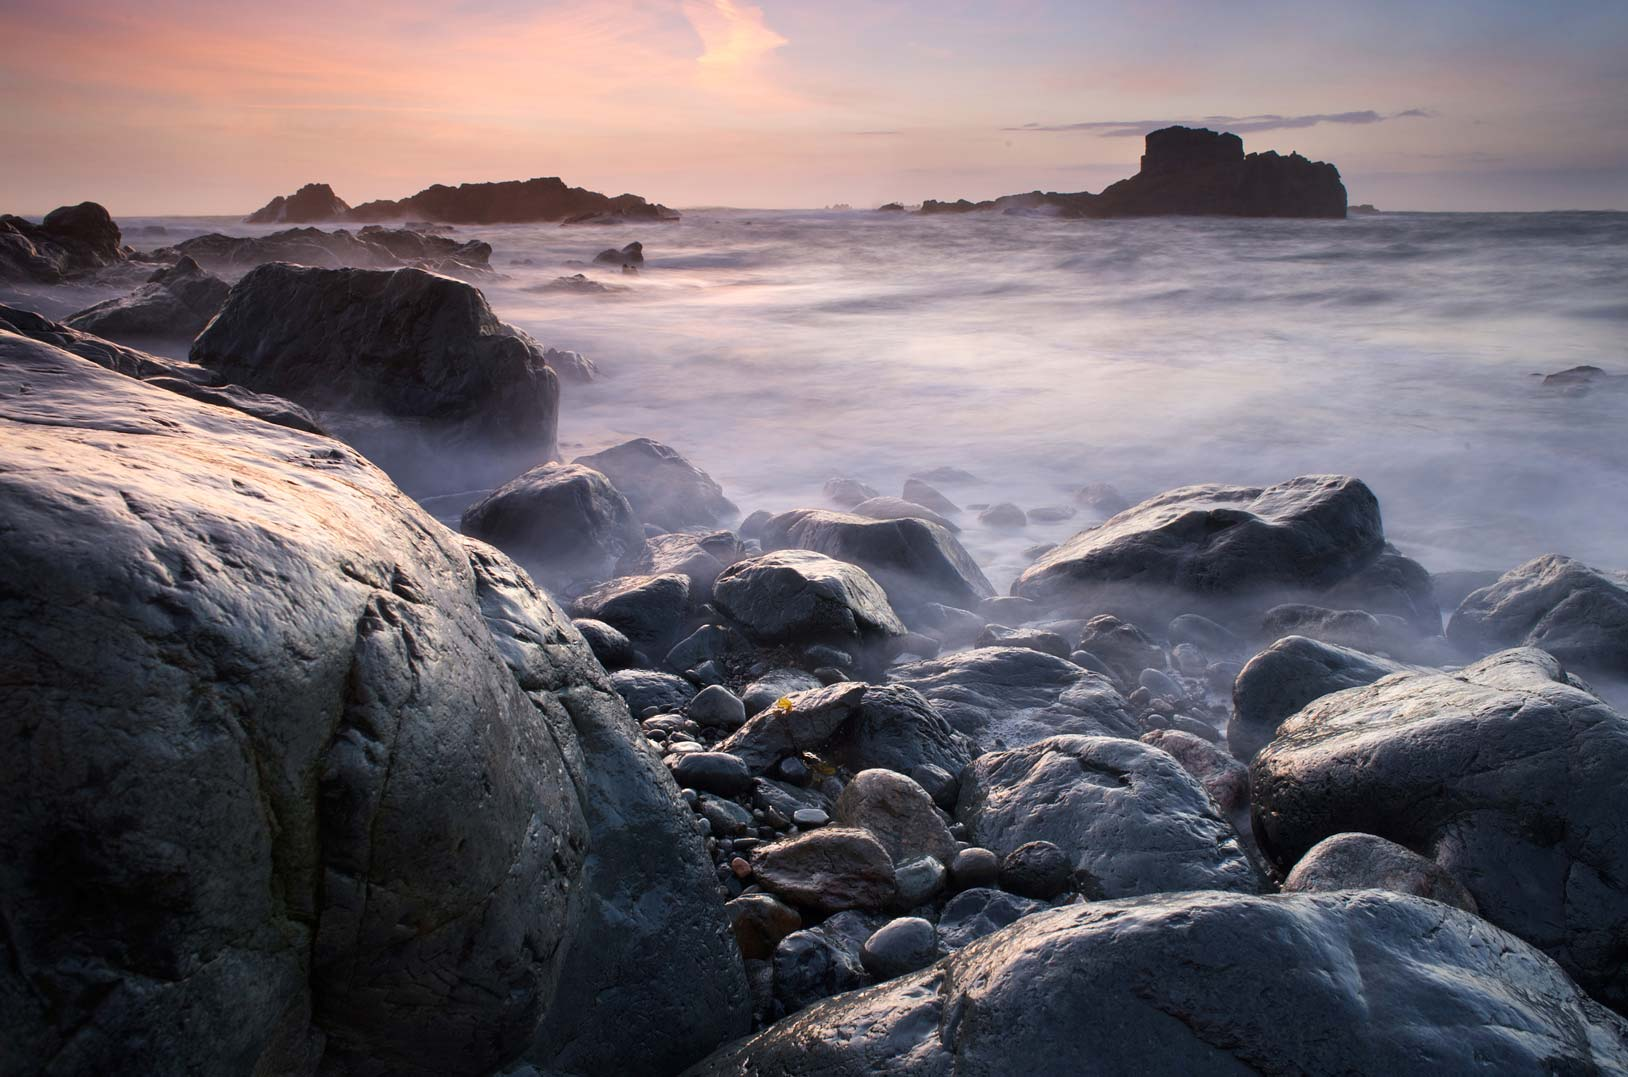 Seascape landscape image with rocks in the foreground